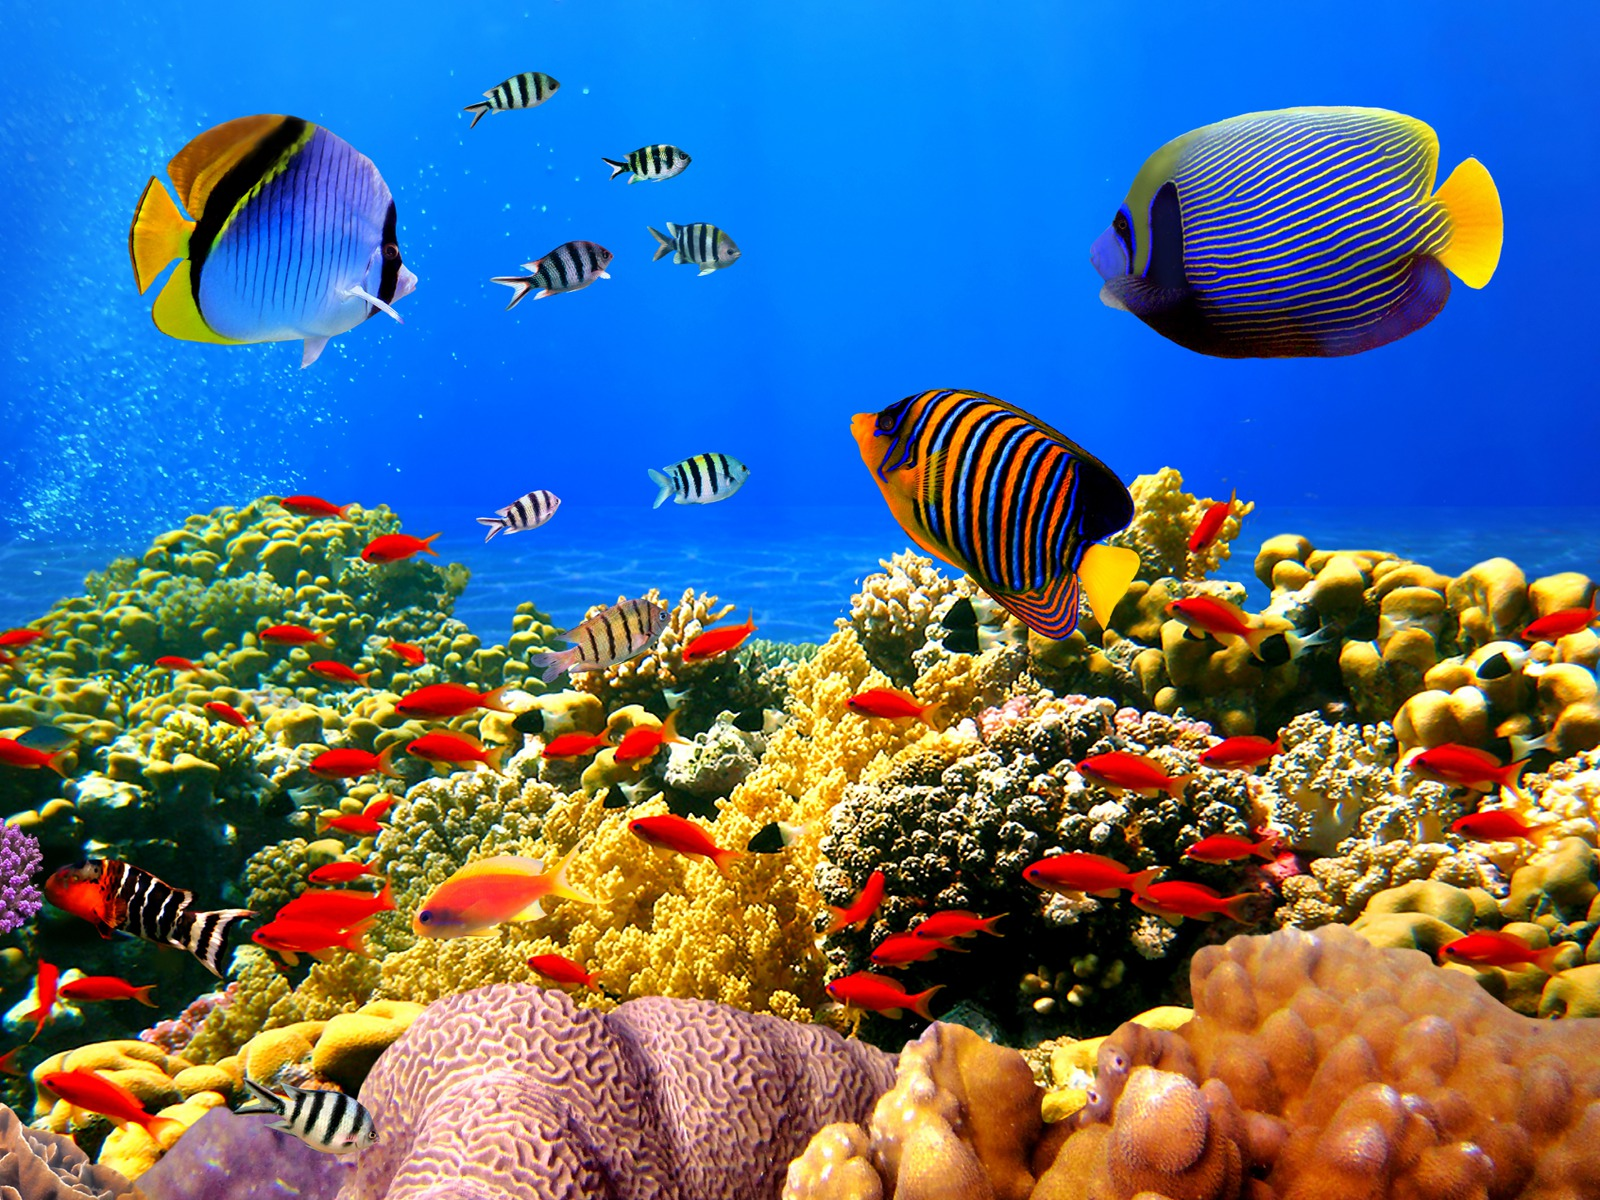 Ocean Reef Fish wallpaper   ForWallpapercom 1600x1200